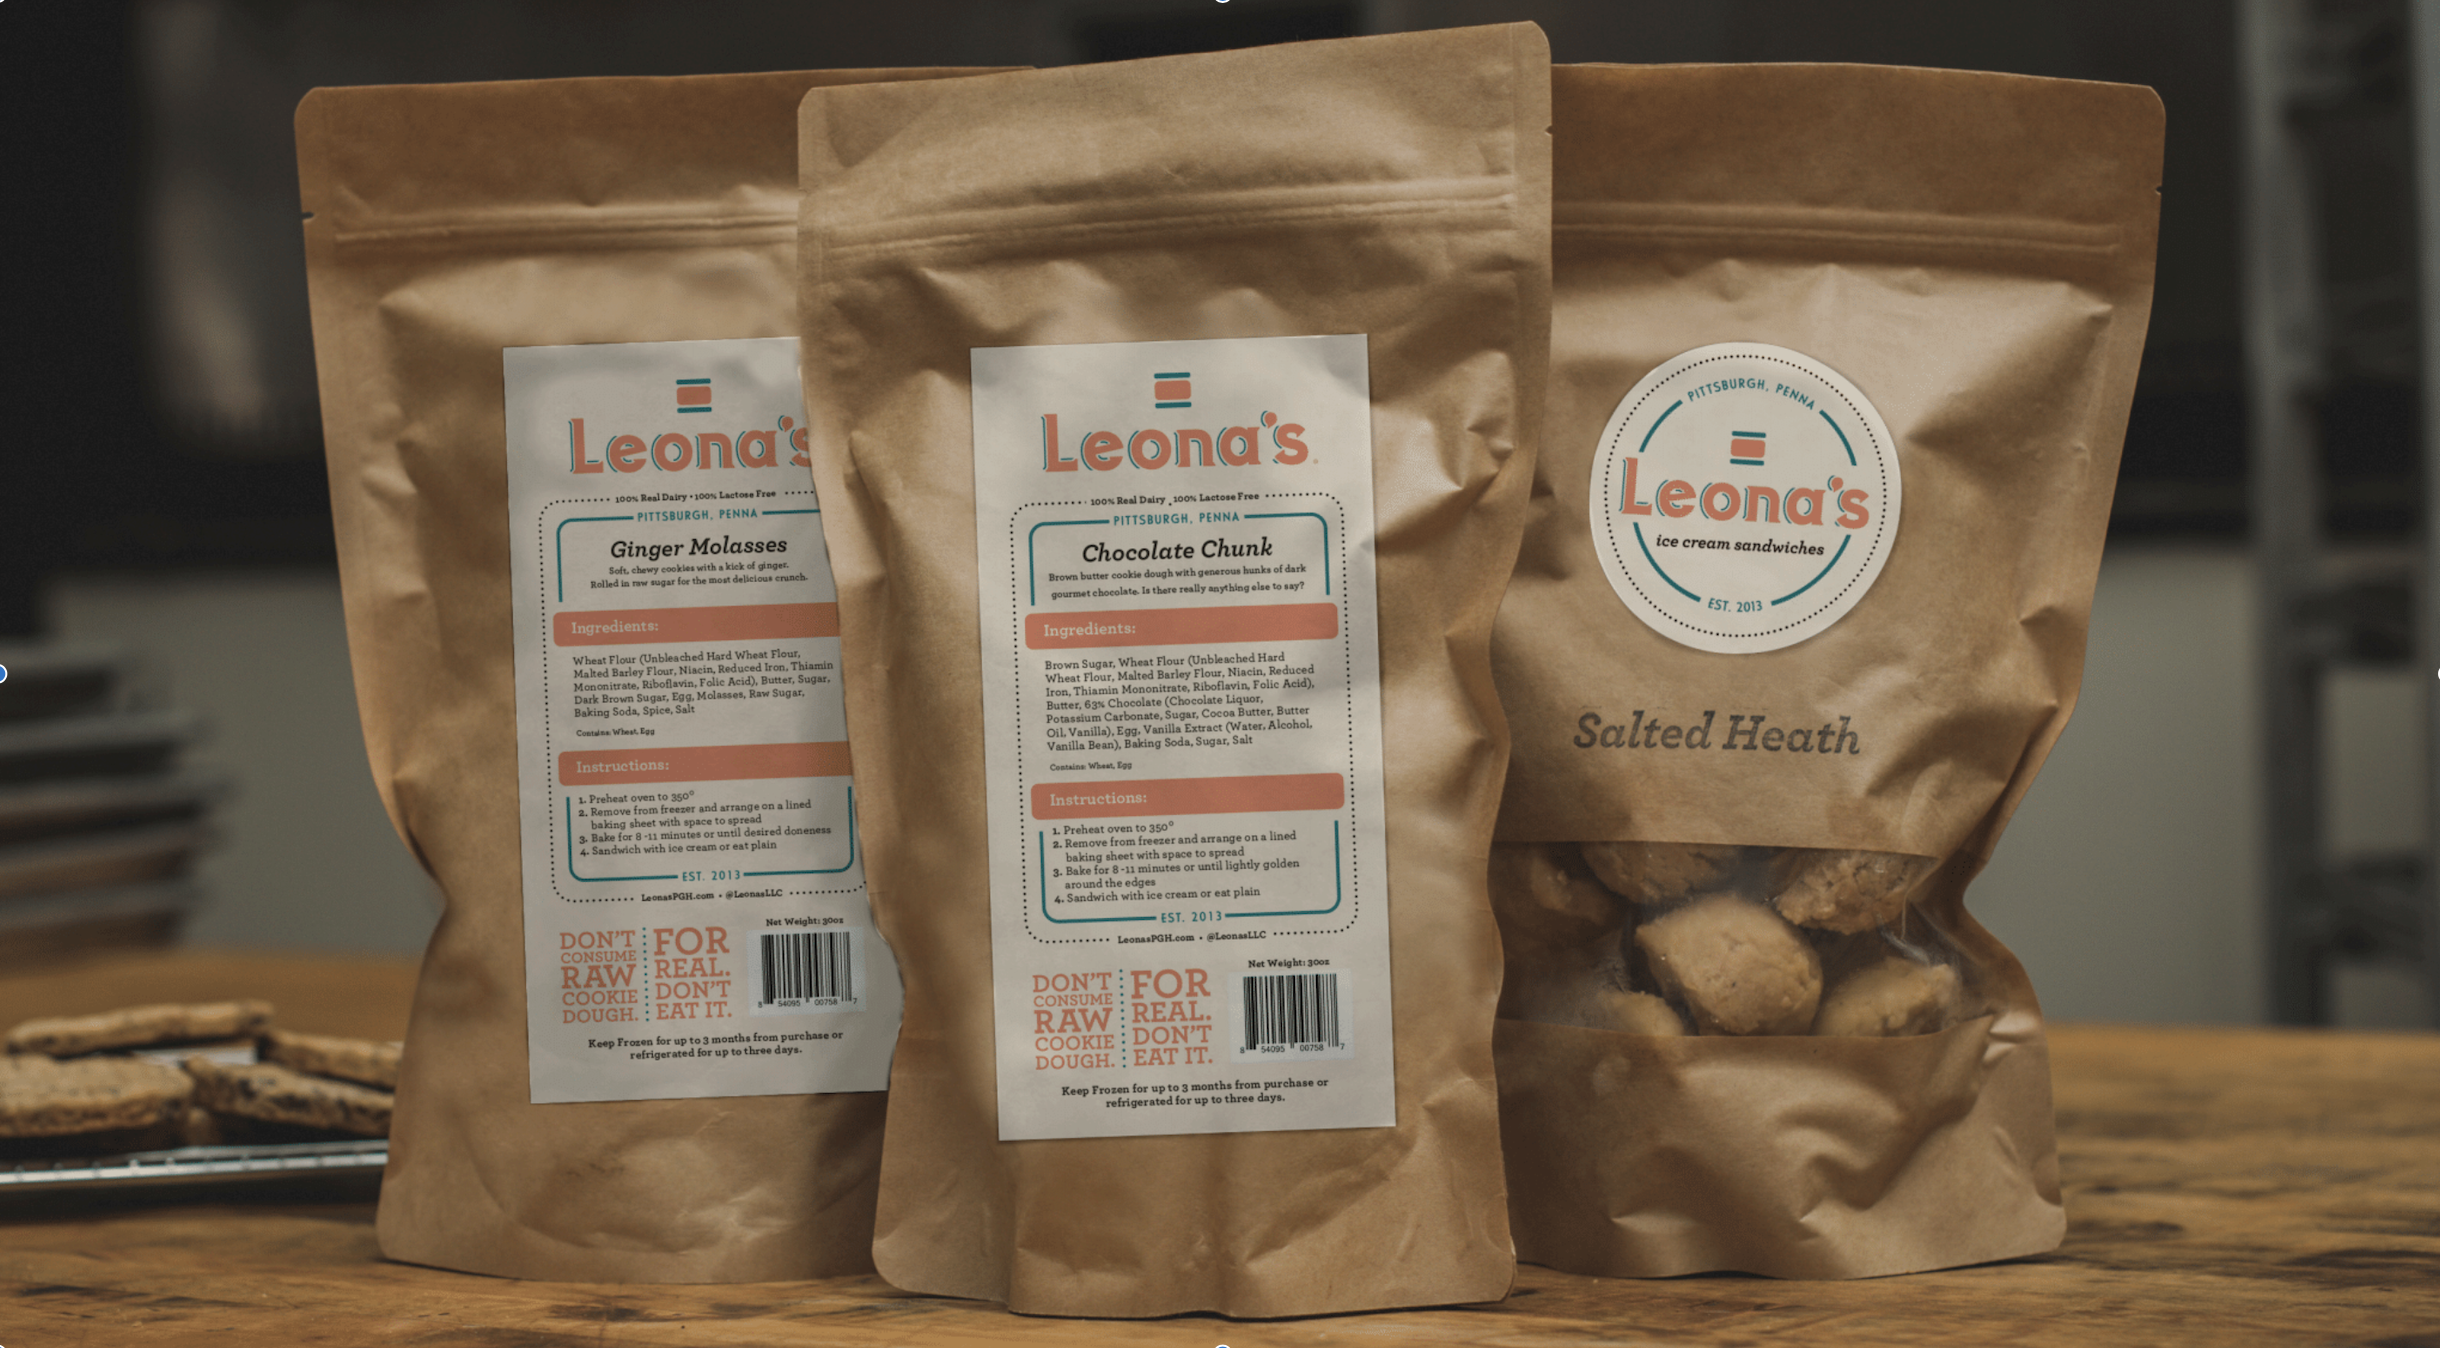 Let Leona's make the holidays a little easier on you with our pre-scooped cookie dough. Each bag contains 16 perfectly portioned little balls of goodness that go straight from the freezer to the oven. It's so simple and you'll look awesome bringing a tin of these to your holiday dinner.